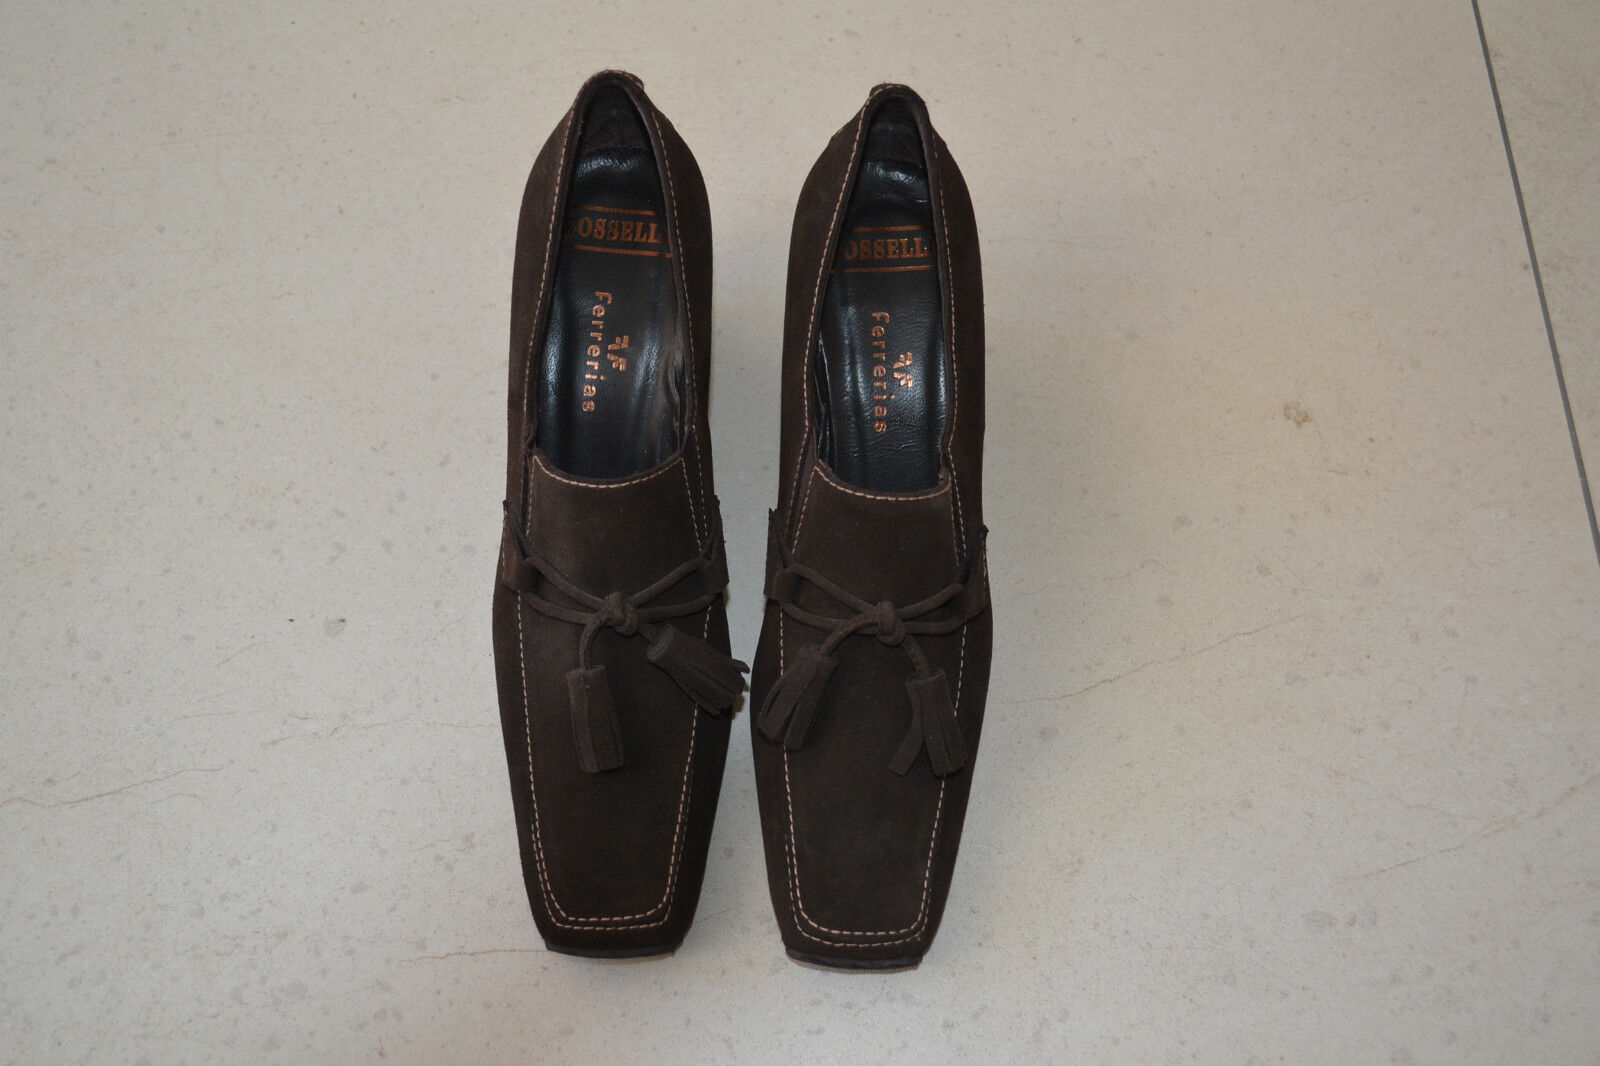 BRAND NEW LADIES BROWN SUEDE ROSSELLI FERRERIAS SHOES IN SIZE 37 RRP 106 EUROS